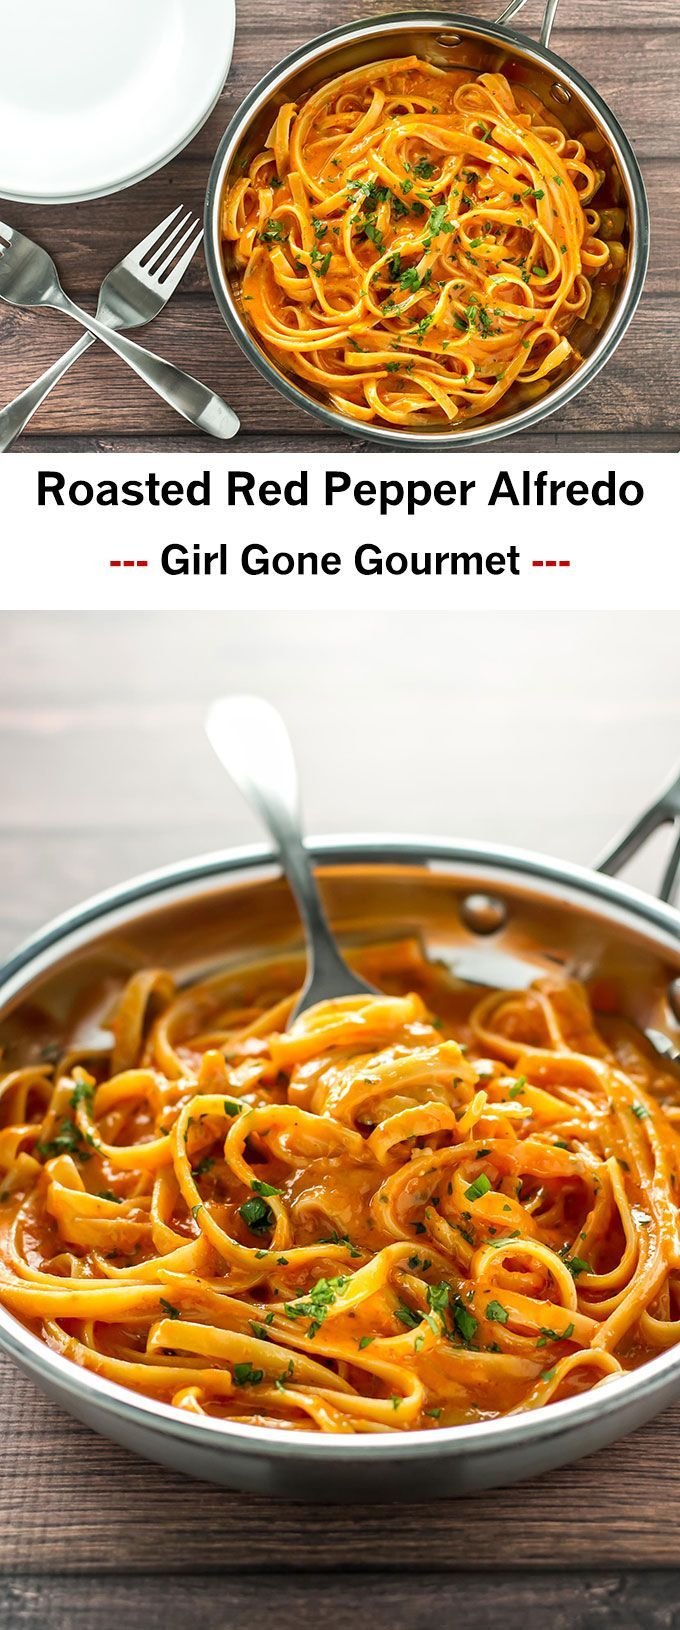 Rich and creamy roasted red pepper alfredo #roastedredpeppers #alfredo #parmesancheese #pasta #comfortfood